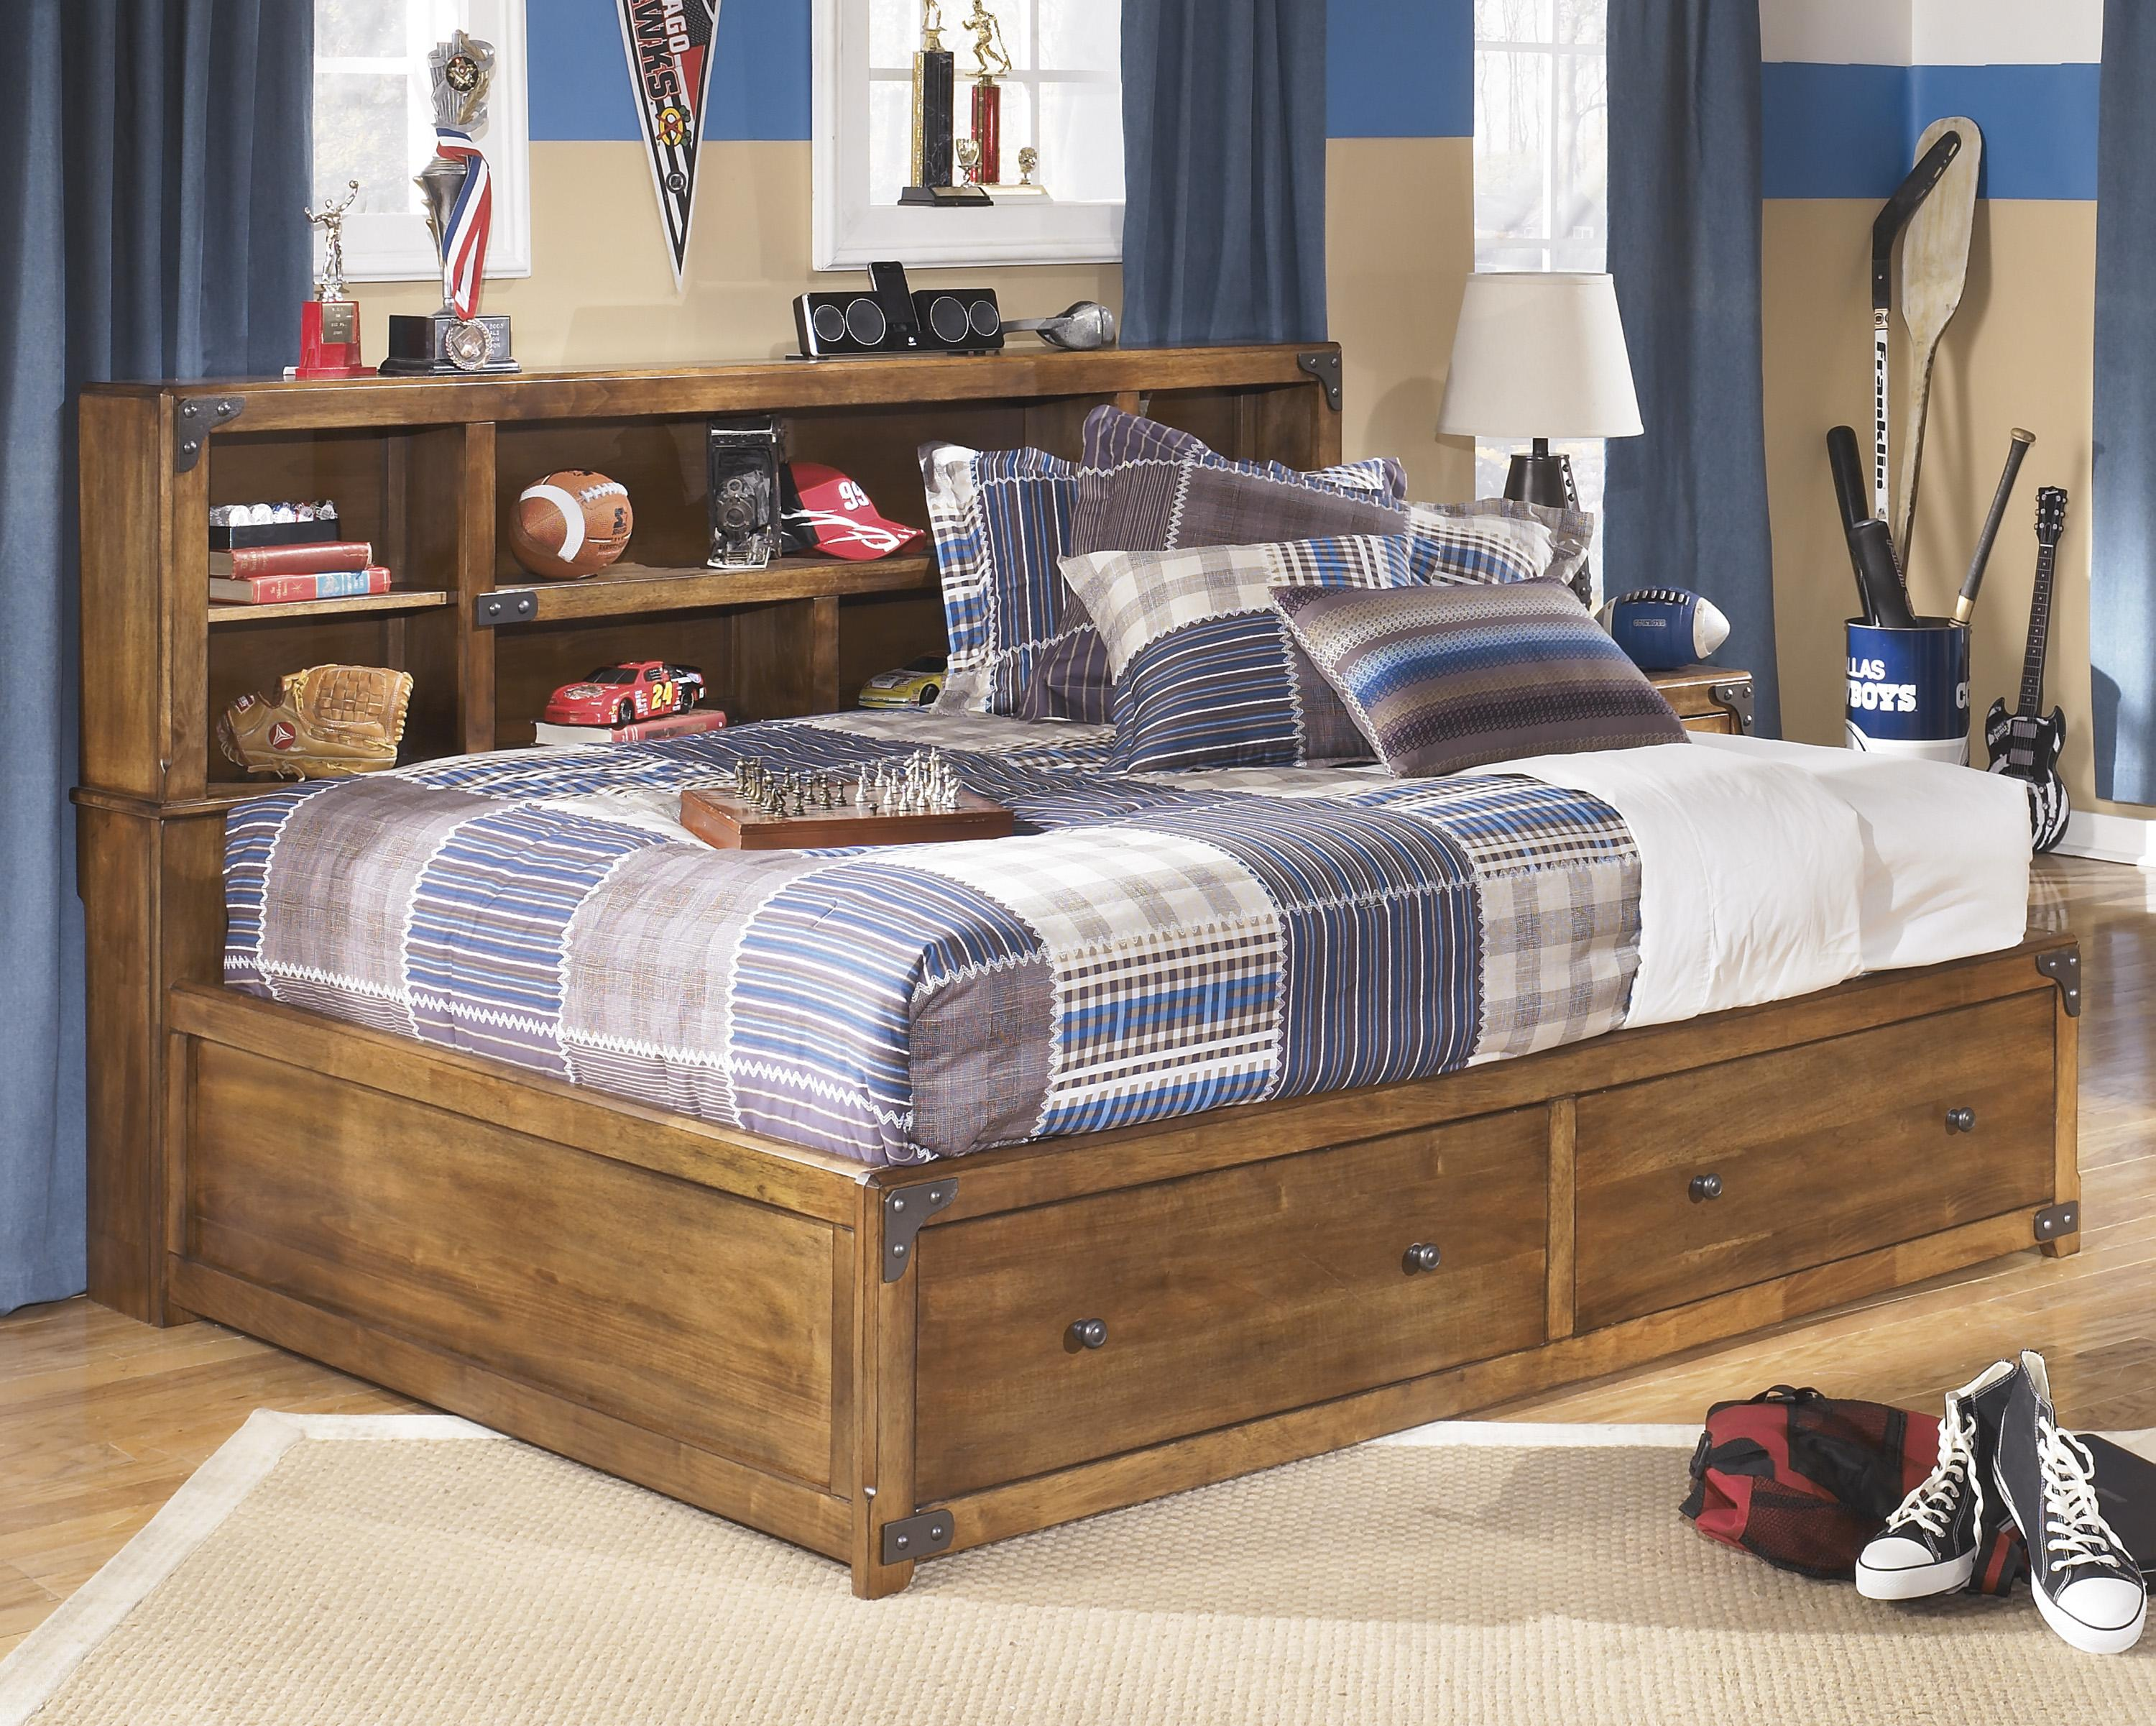 Picture of: Storage Beds Full Size Ideas